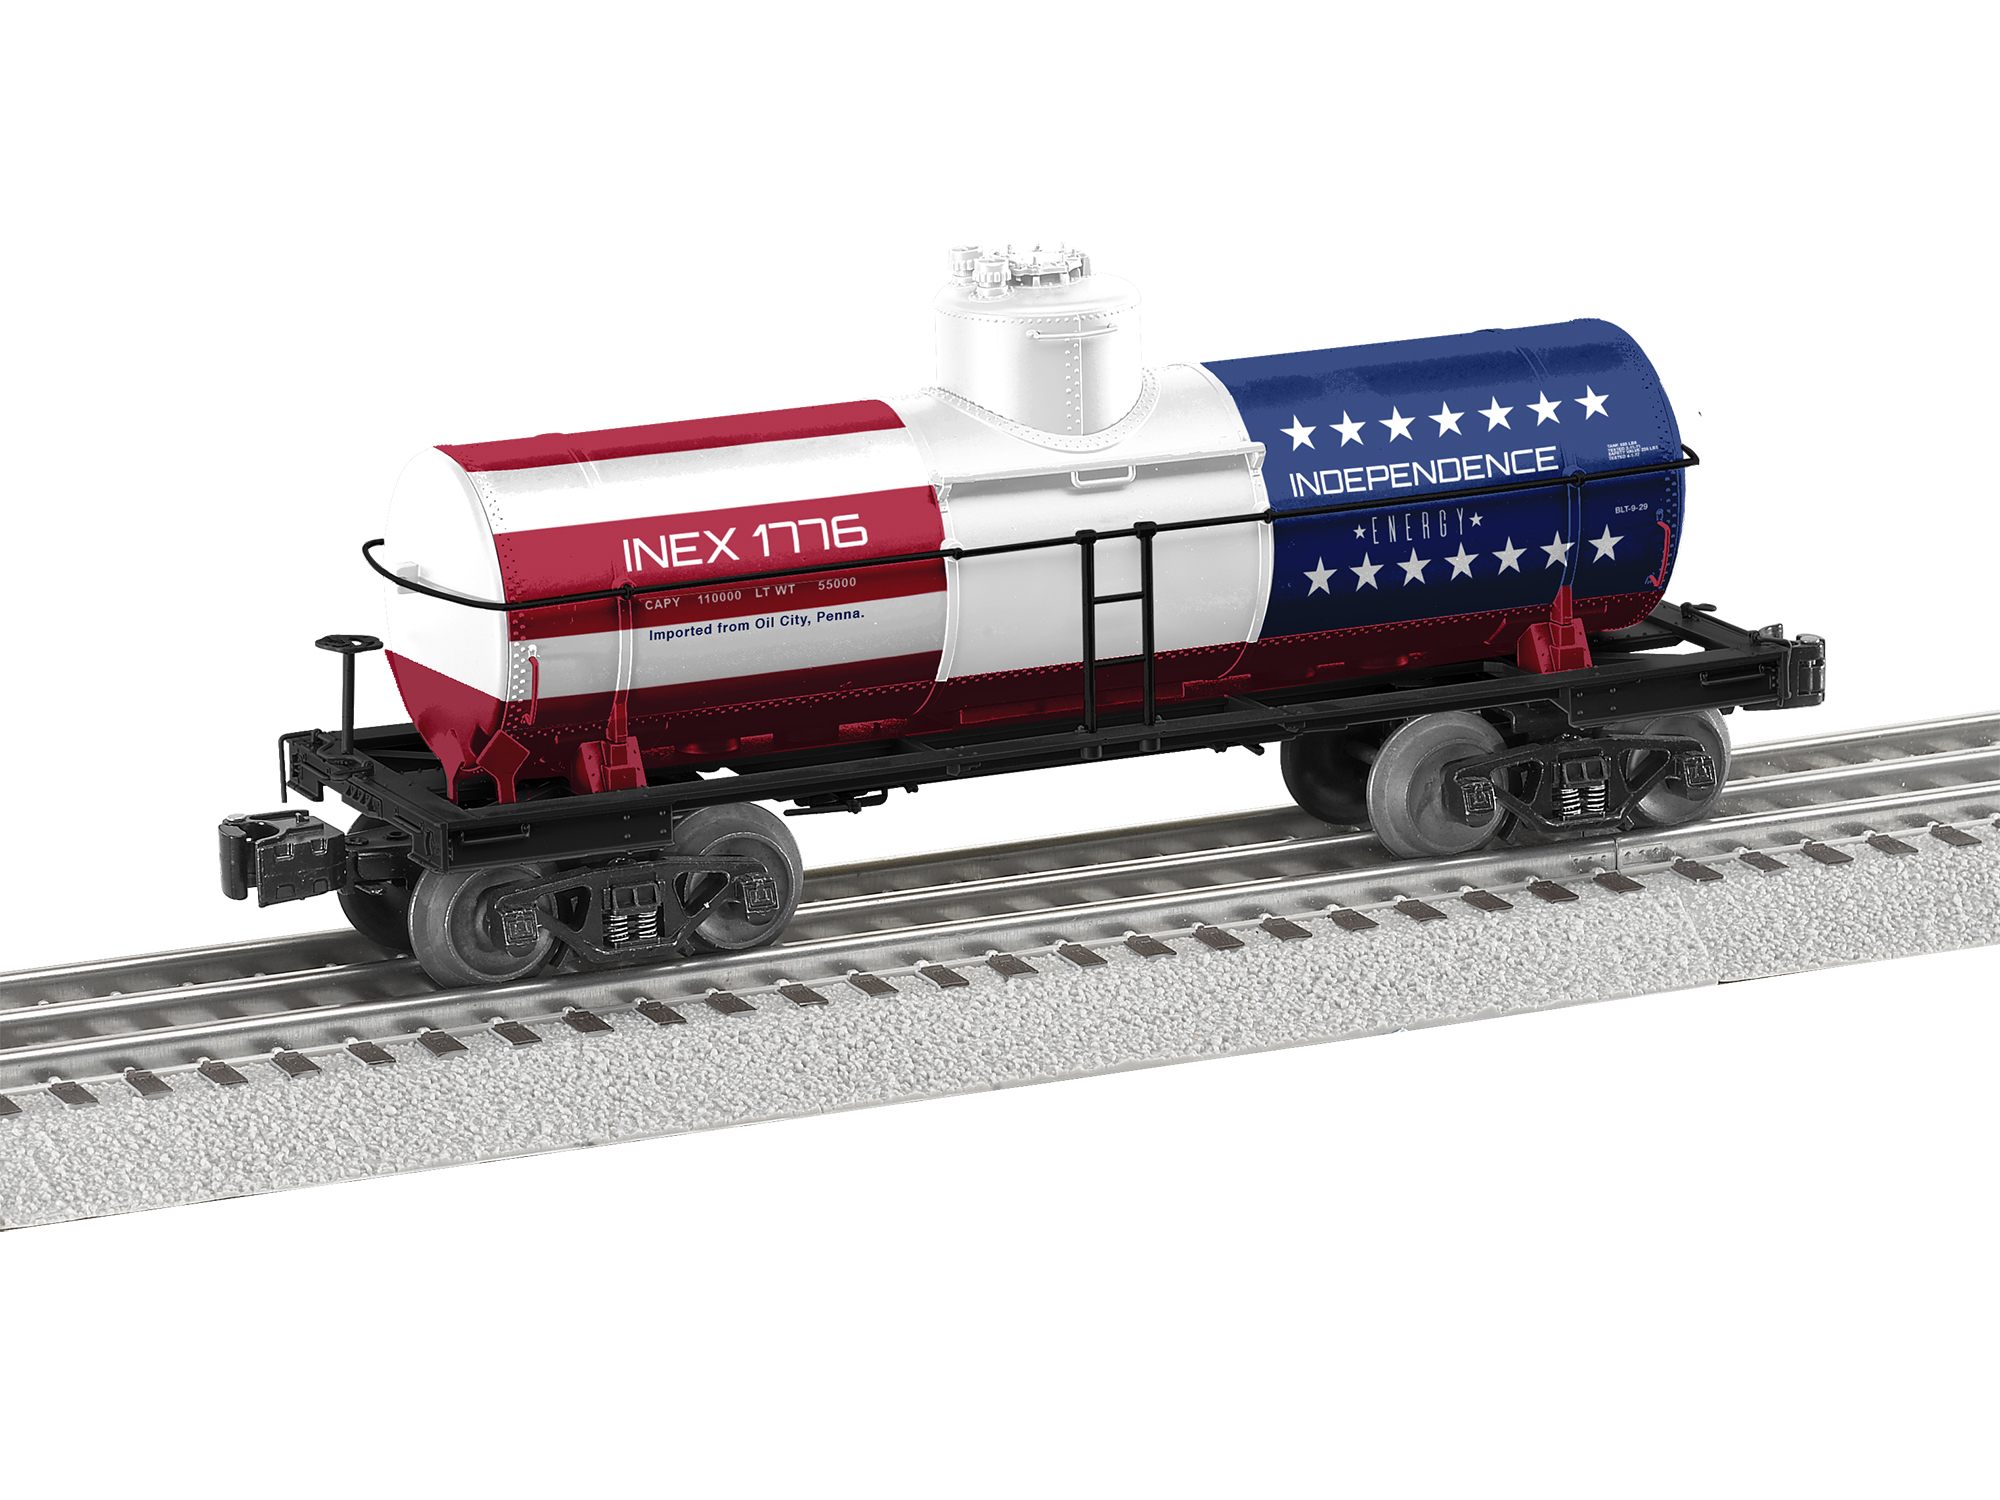 Lionel 2026300 O 8,000-Gallon Tank Car 3-Rail RTR Independence Energy 1776 434-2026300